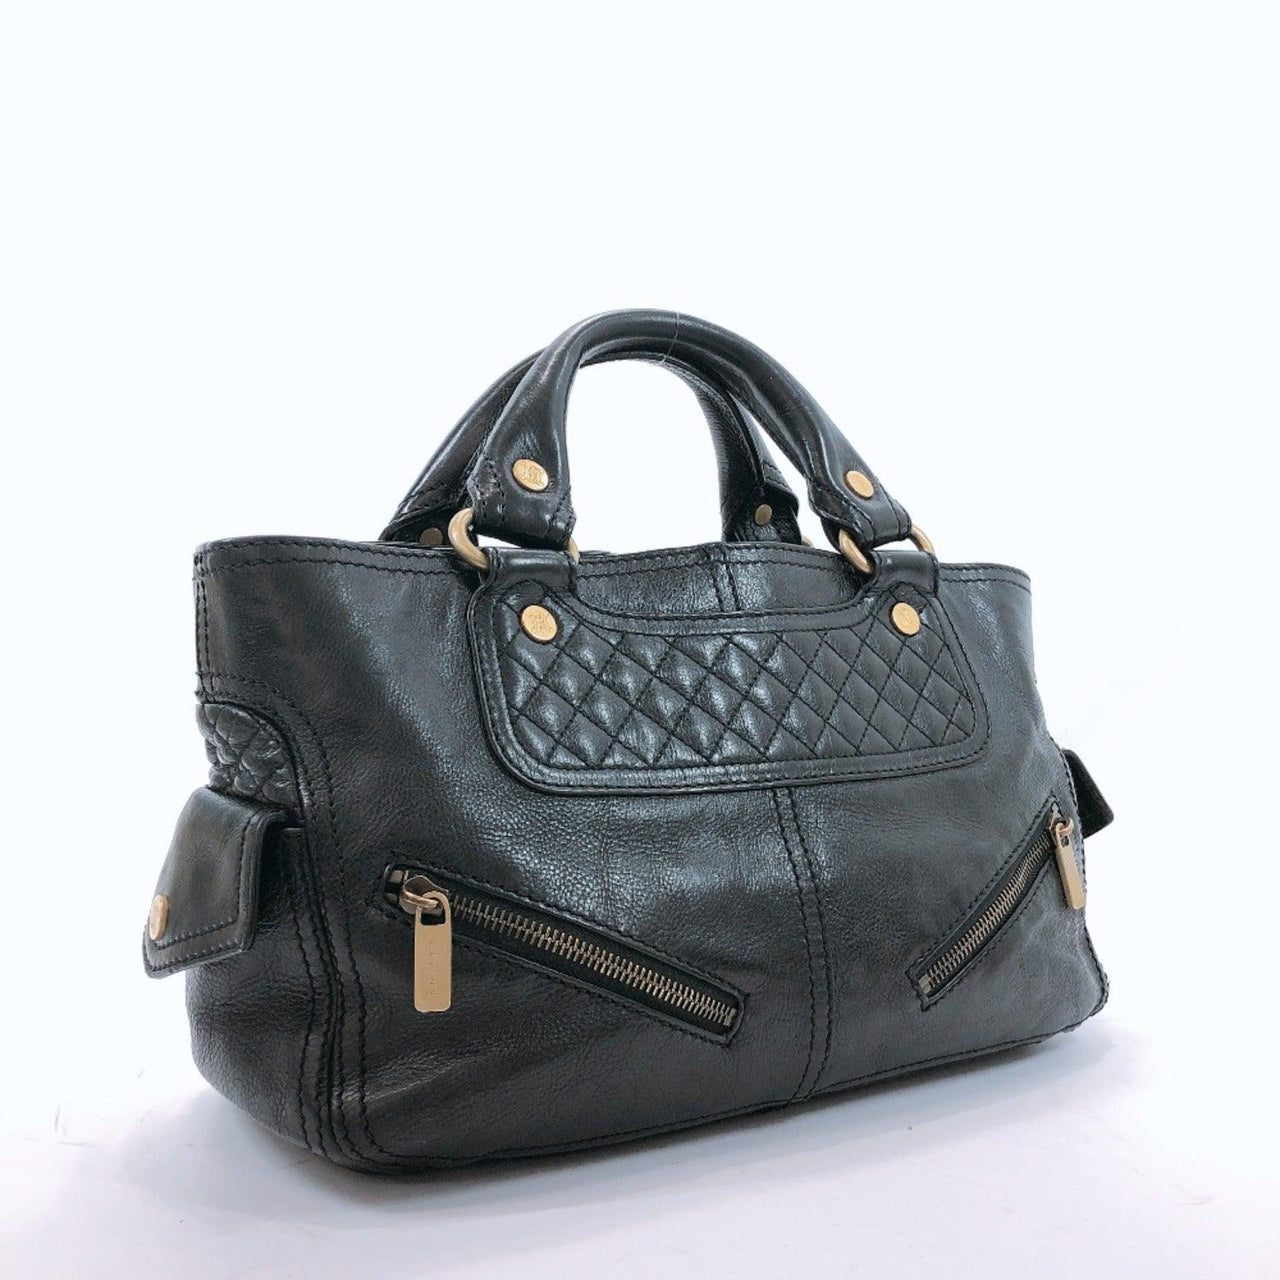 CELINE Tote Bag CE00/25 Boogie bag leather black Women Used